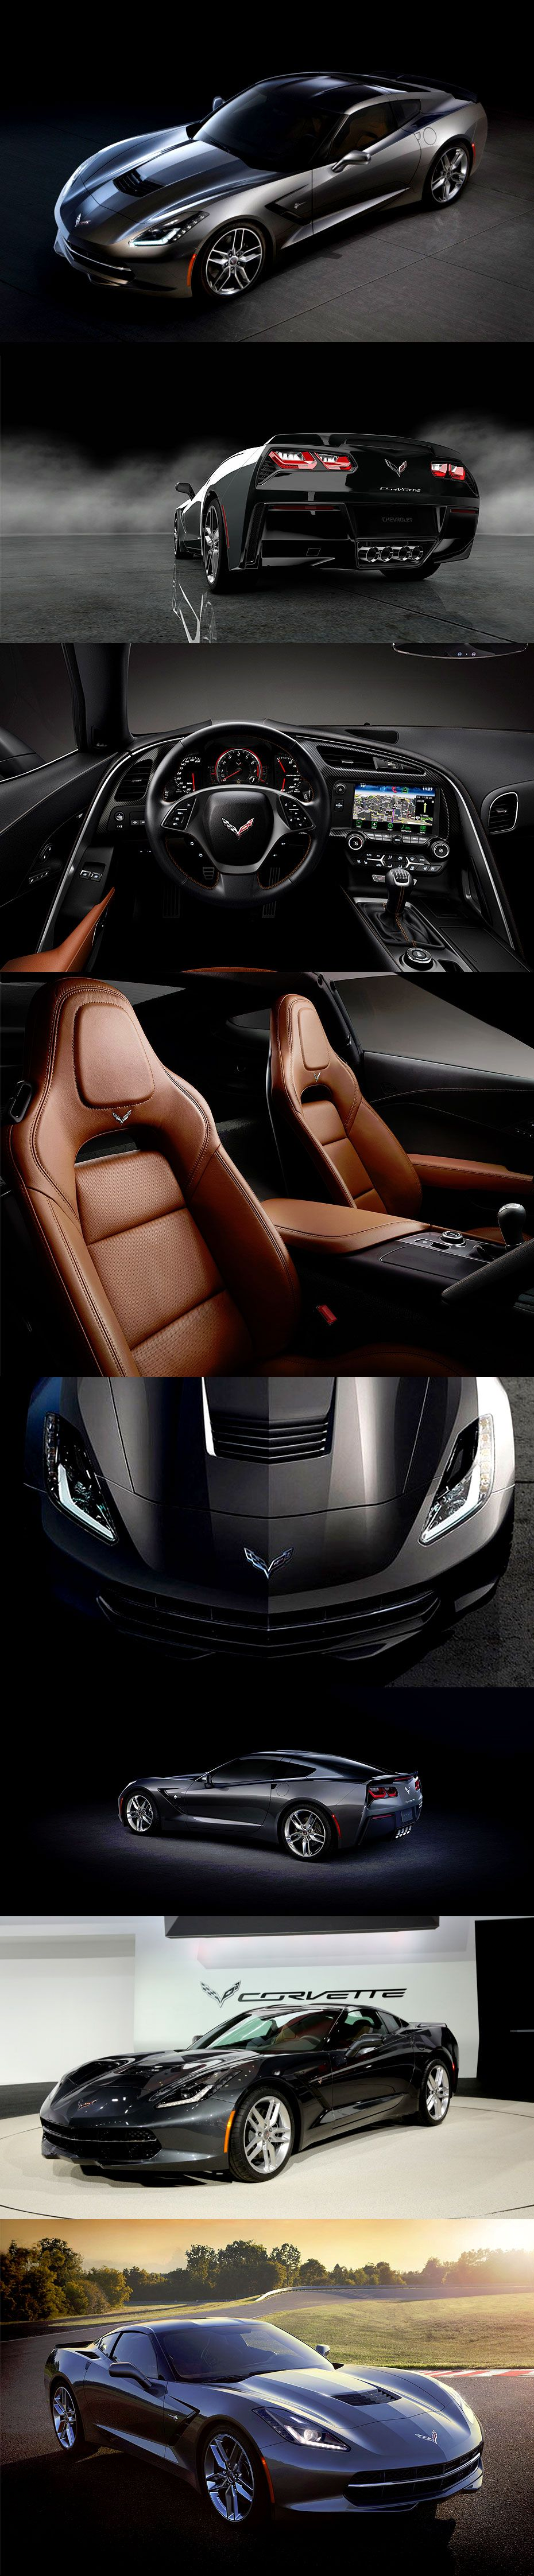 2014 Corvette Stingray. - If you have any images you wish to submit email to tastefulimagesnz@gmail.com